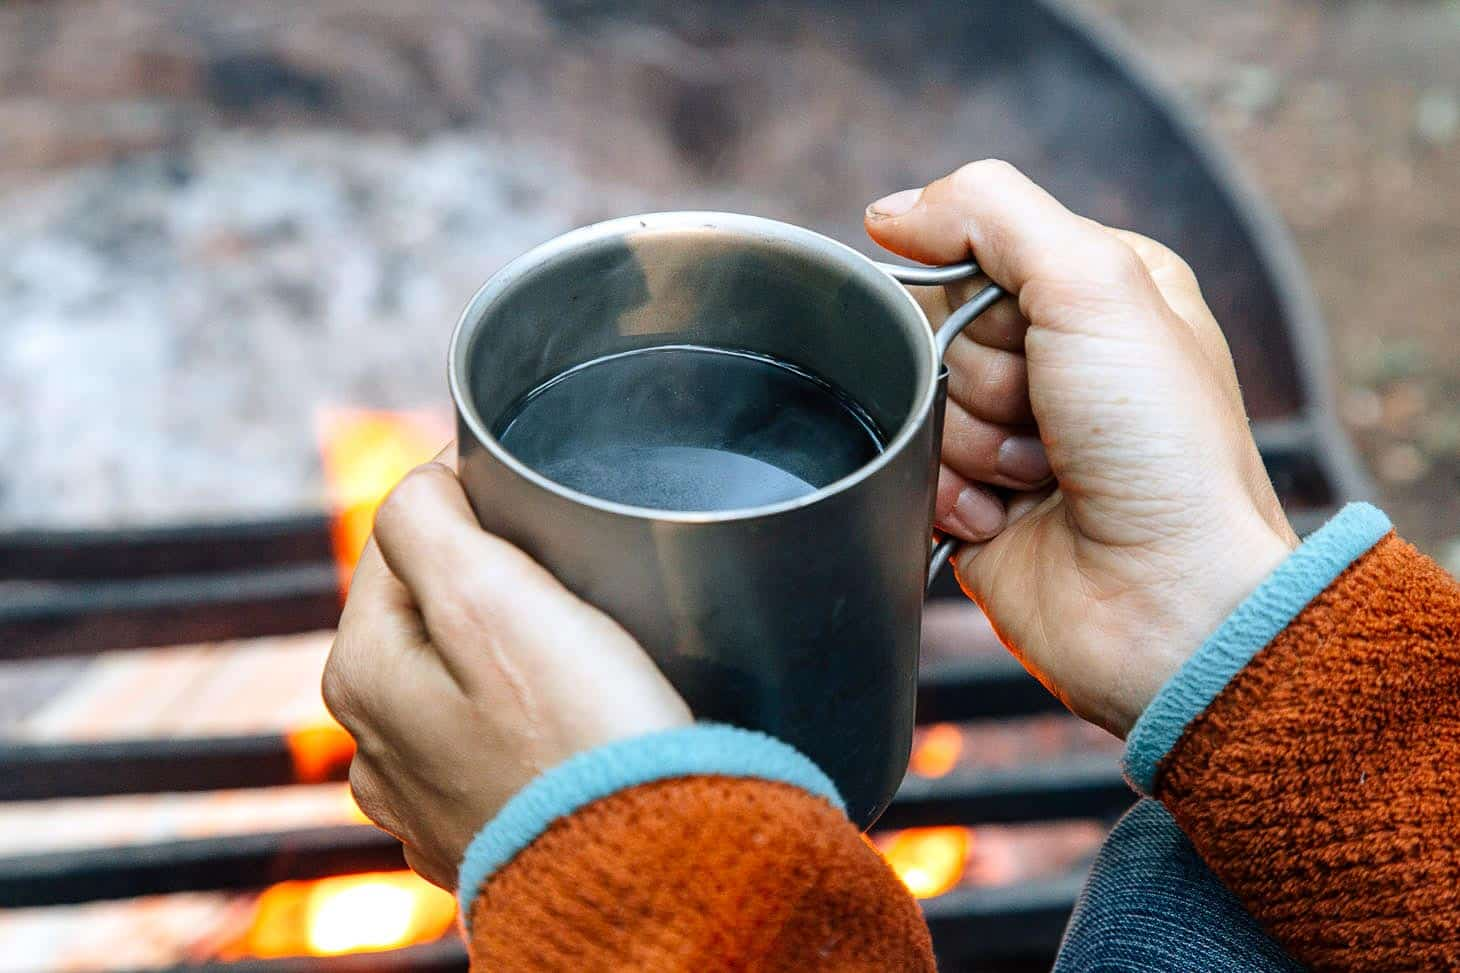 A person holding a can of coffee next to a campfire